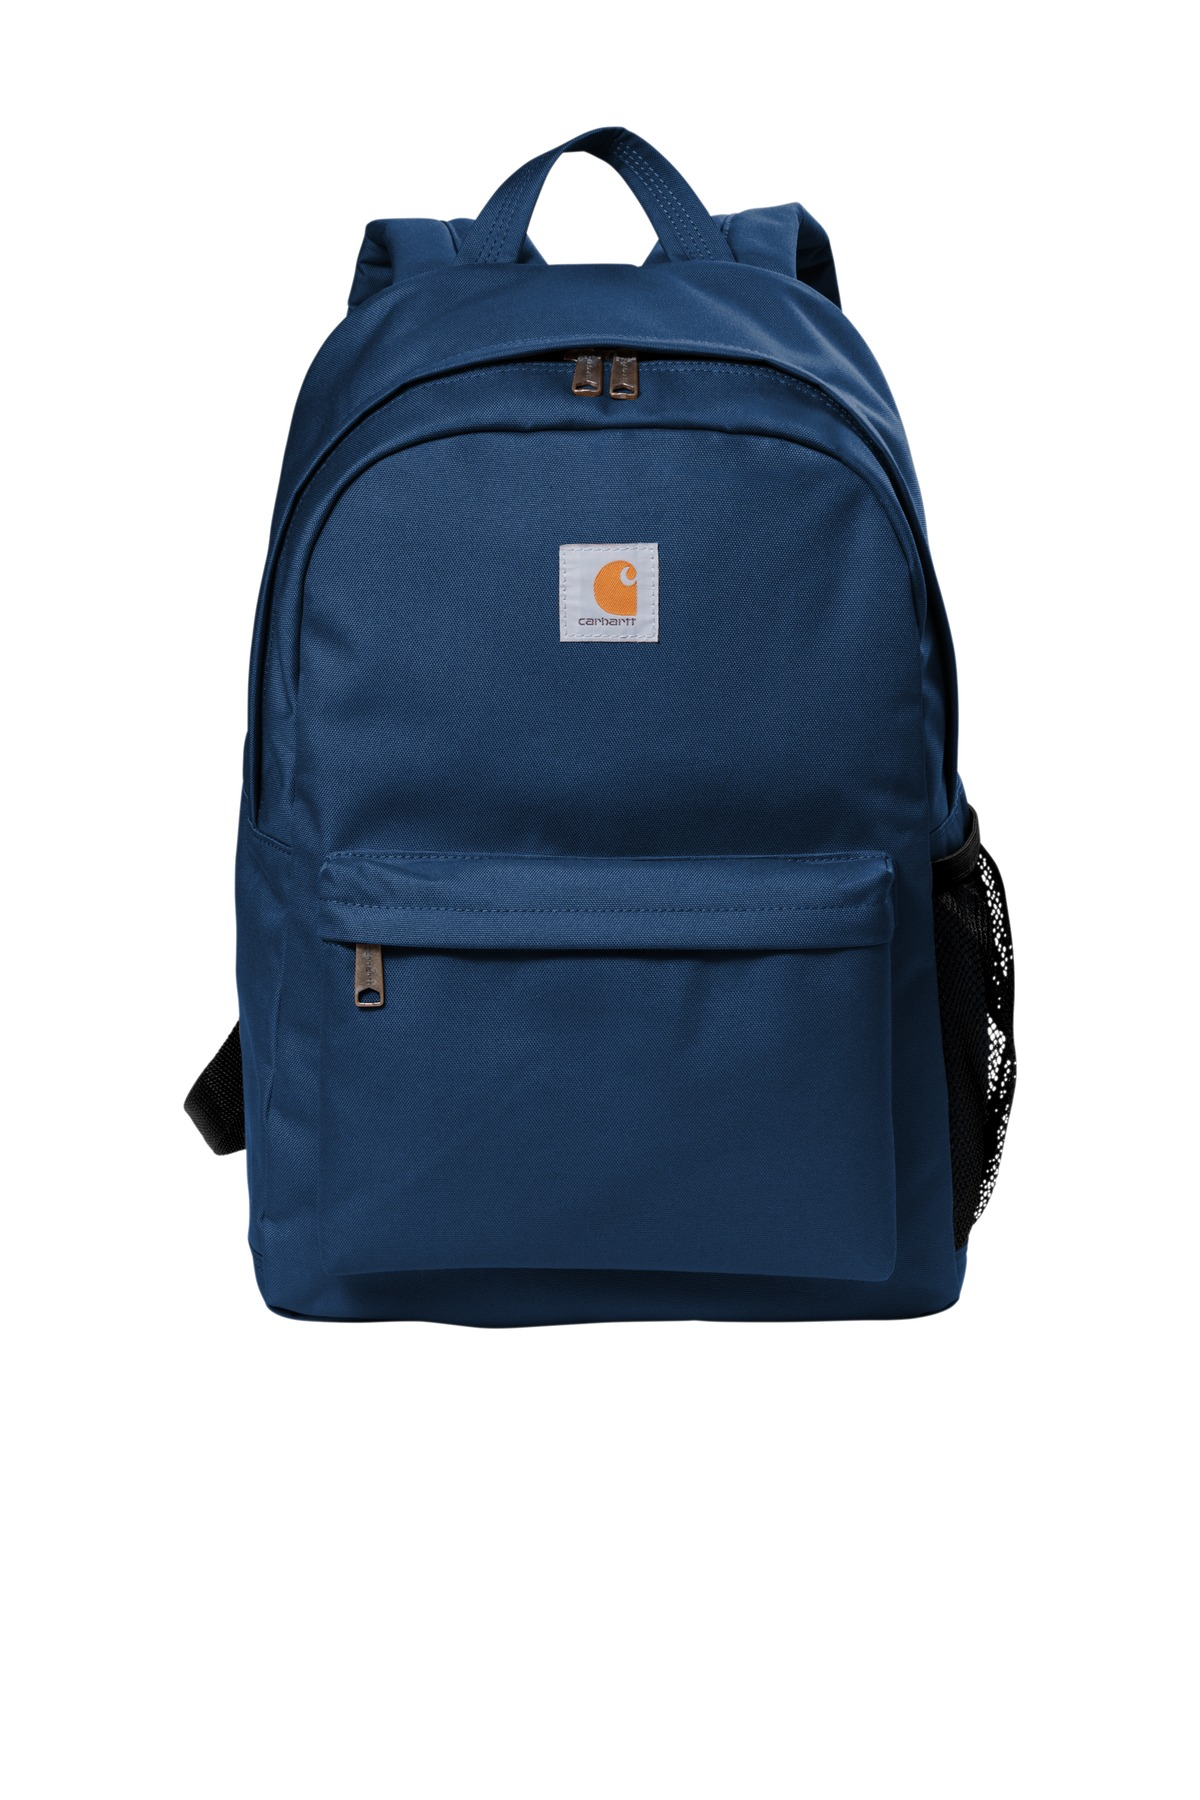 Carhartt ®  Canvas Backpack. CT89241804 - Navy